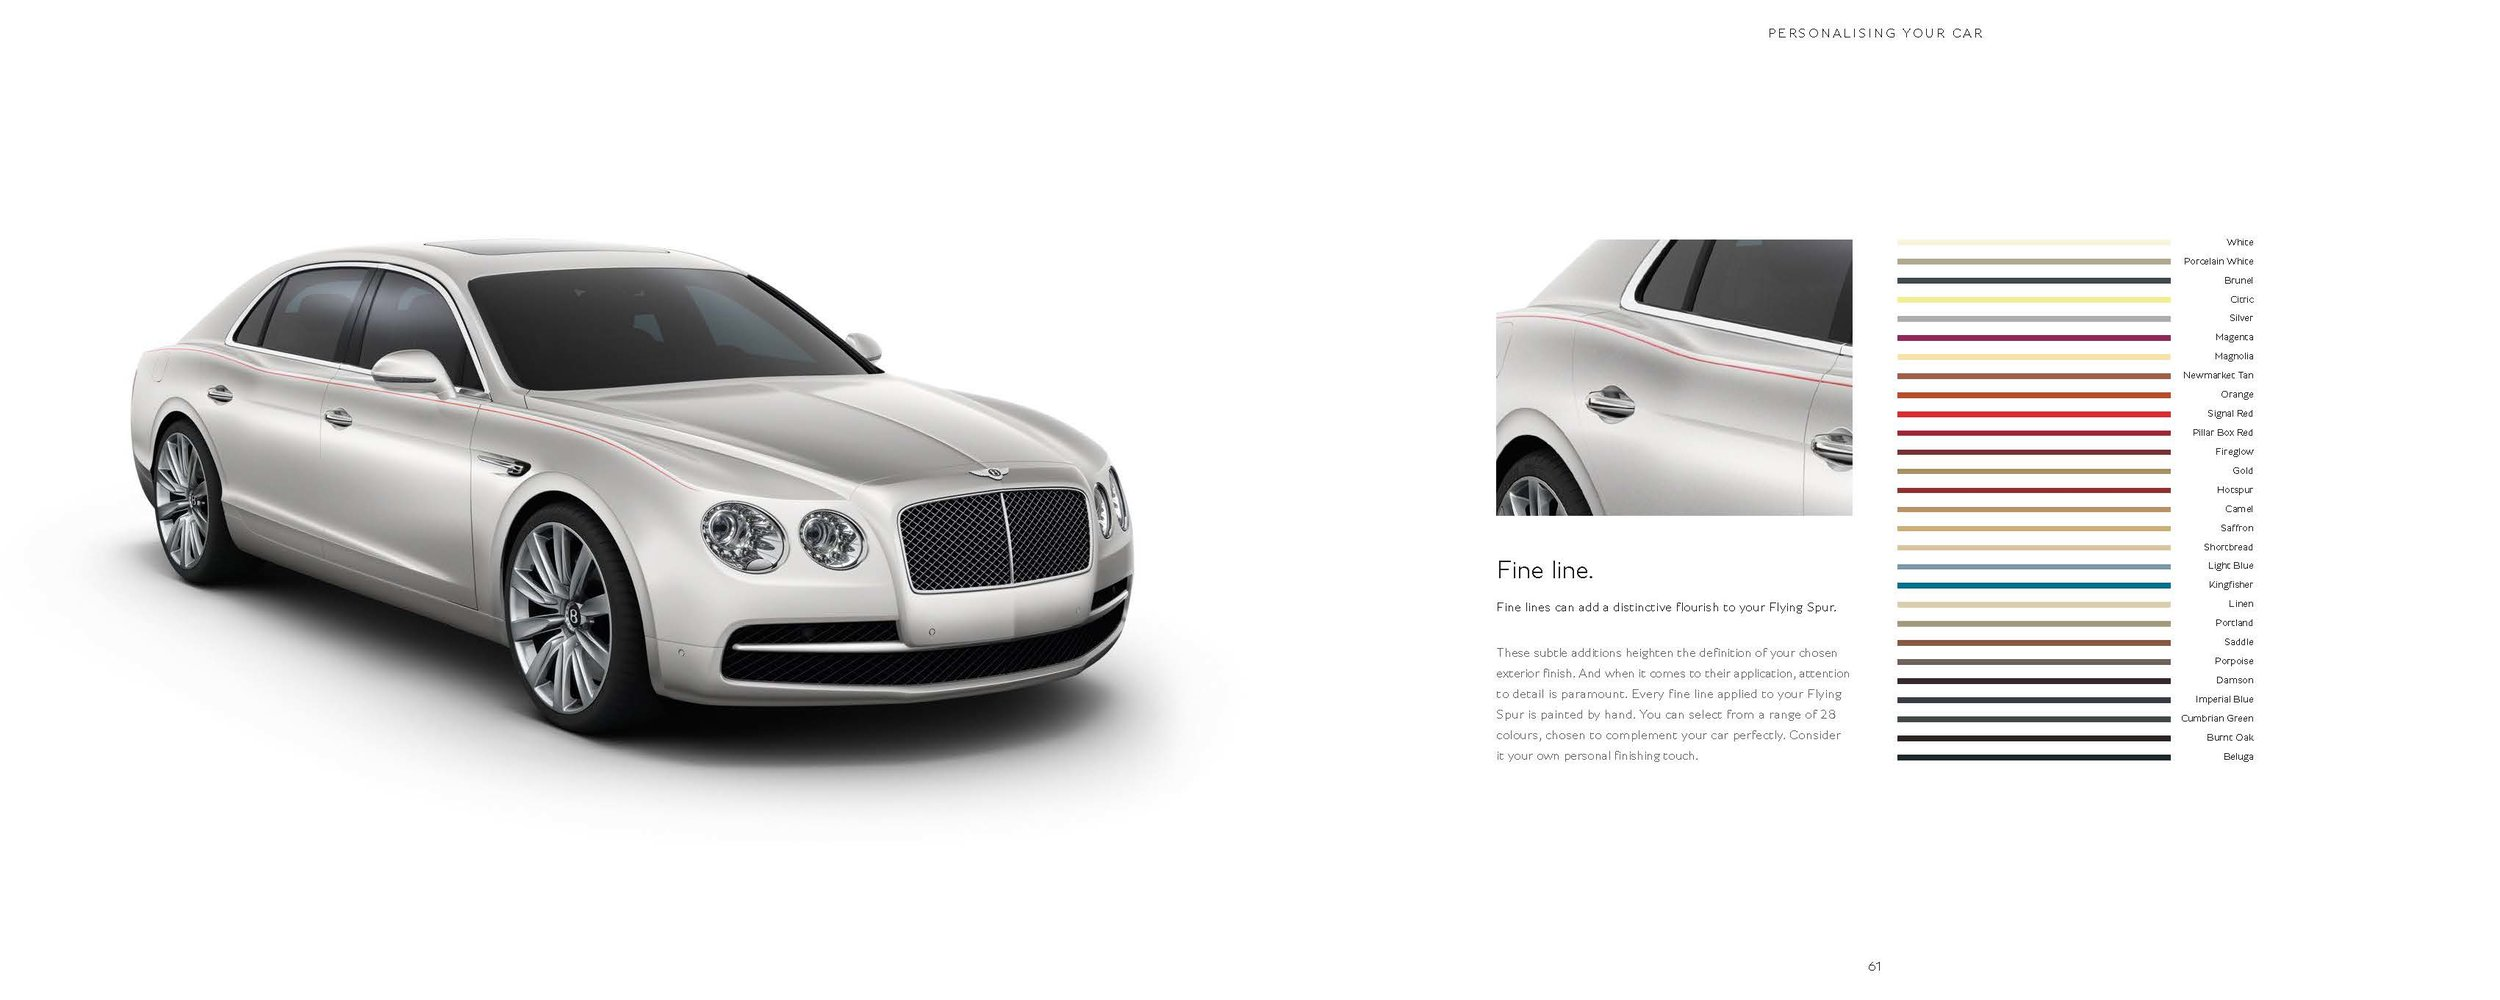 BENFS-16-012_Flying Spur Customer Book Cover & Contents CLEAN_v15_Page_32.jpg